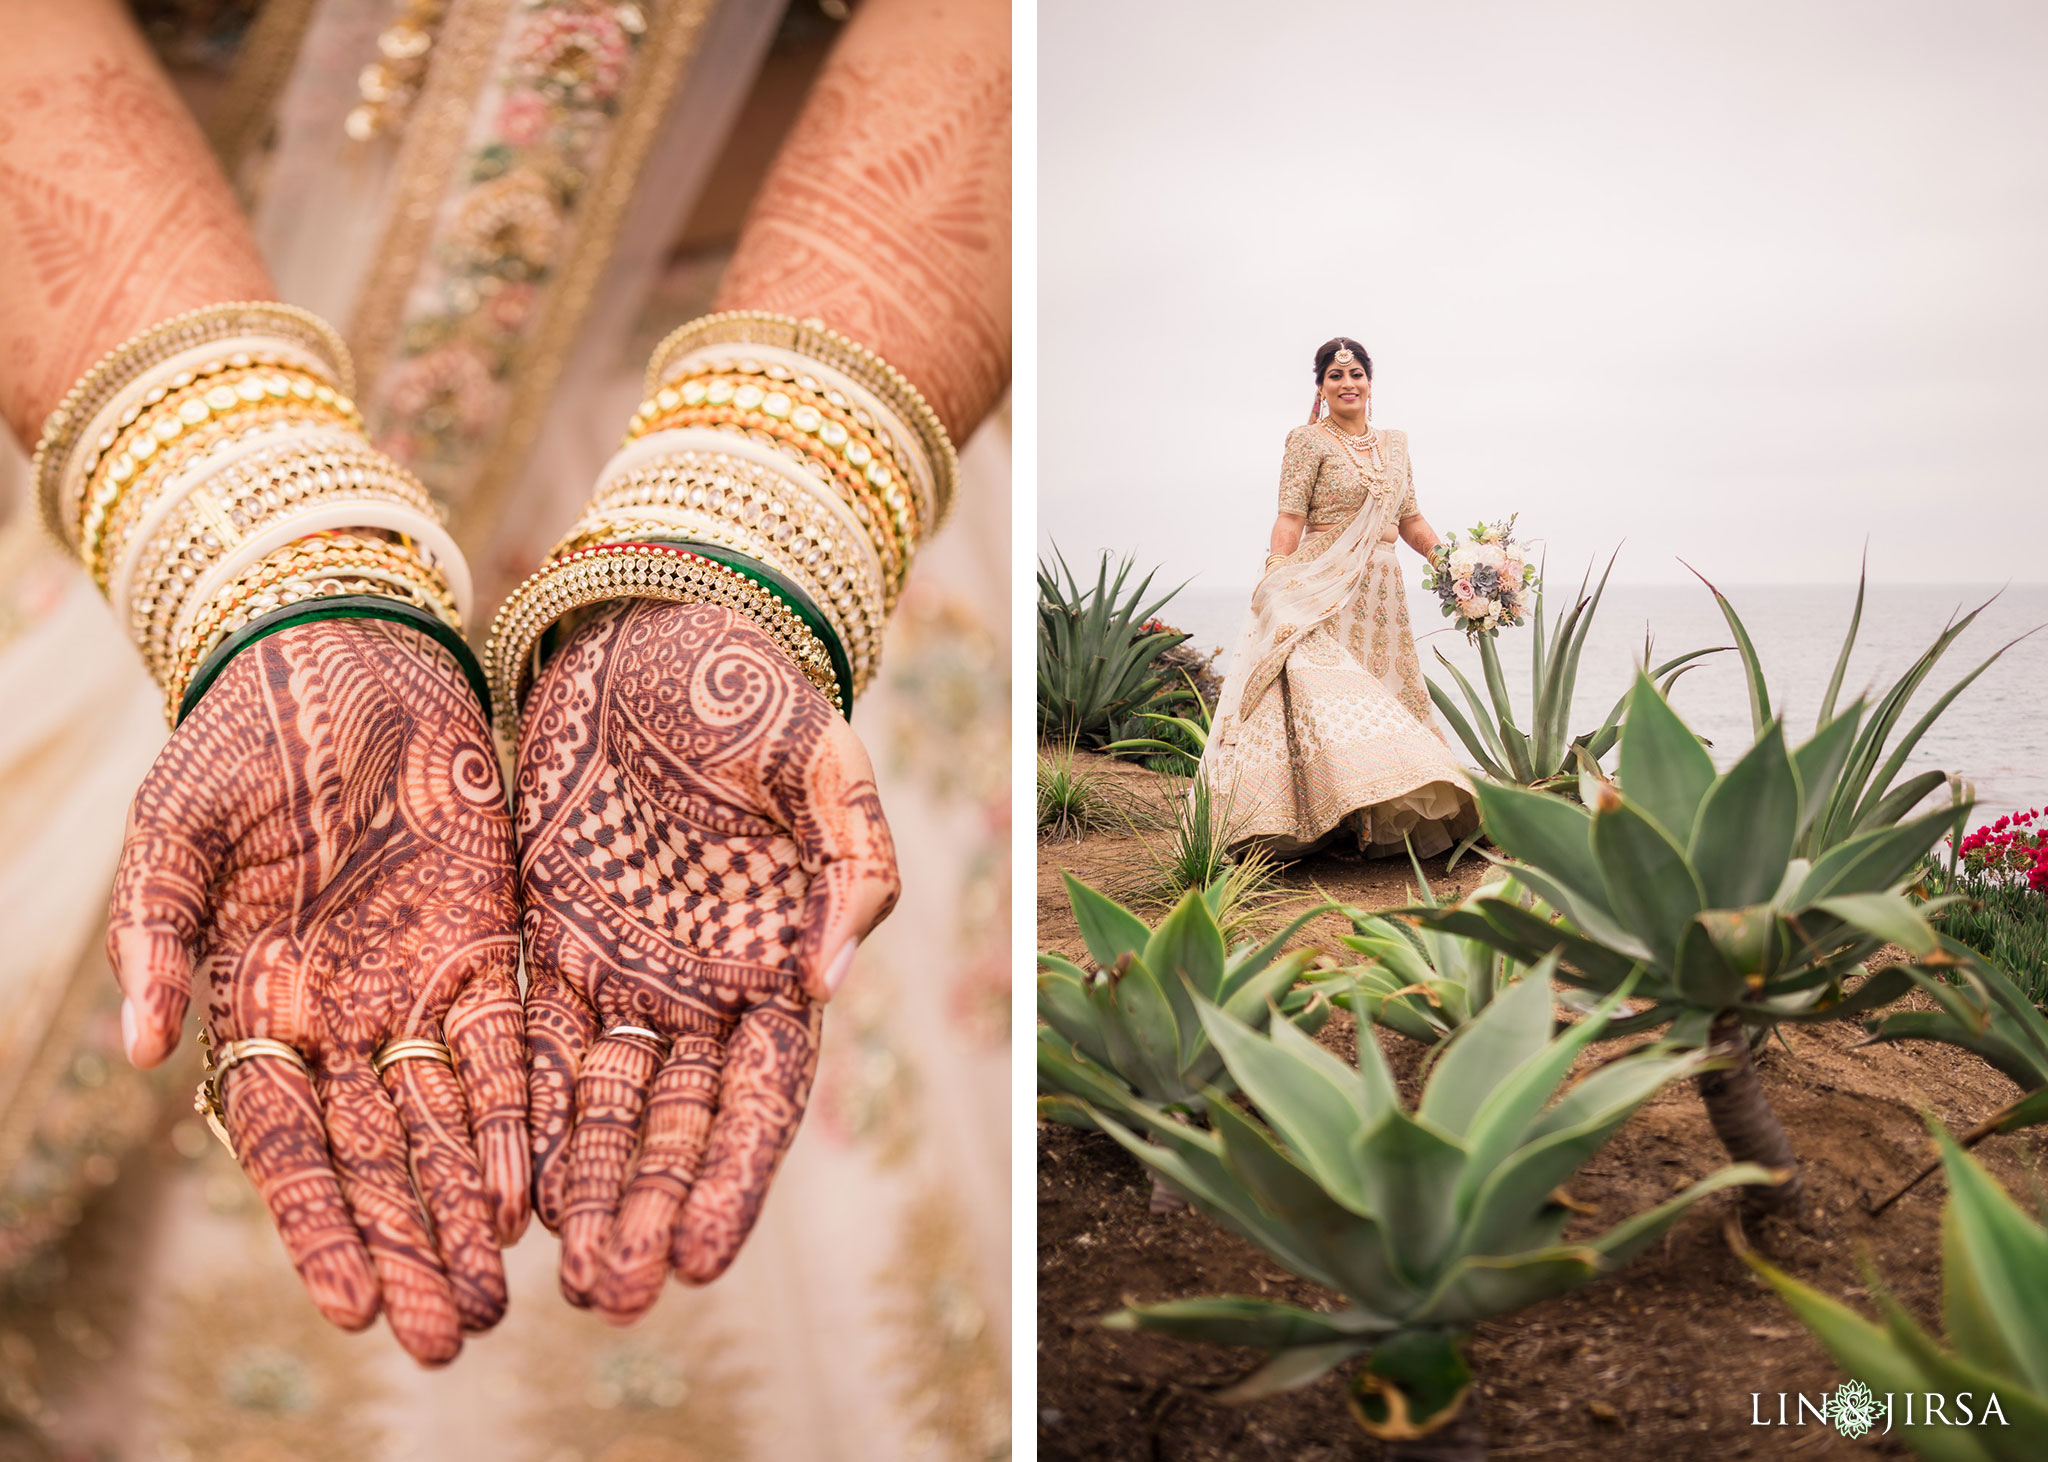 009 montage laguna beach indian bride wedding photography